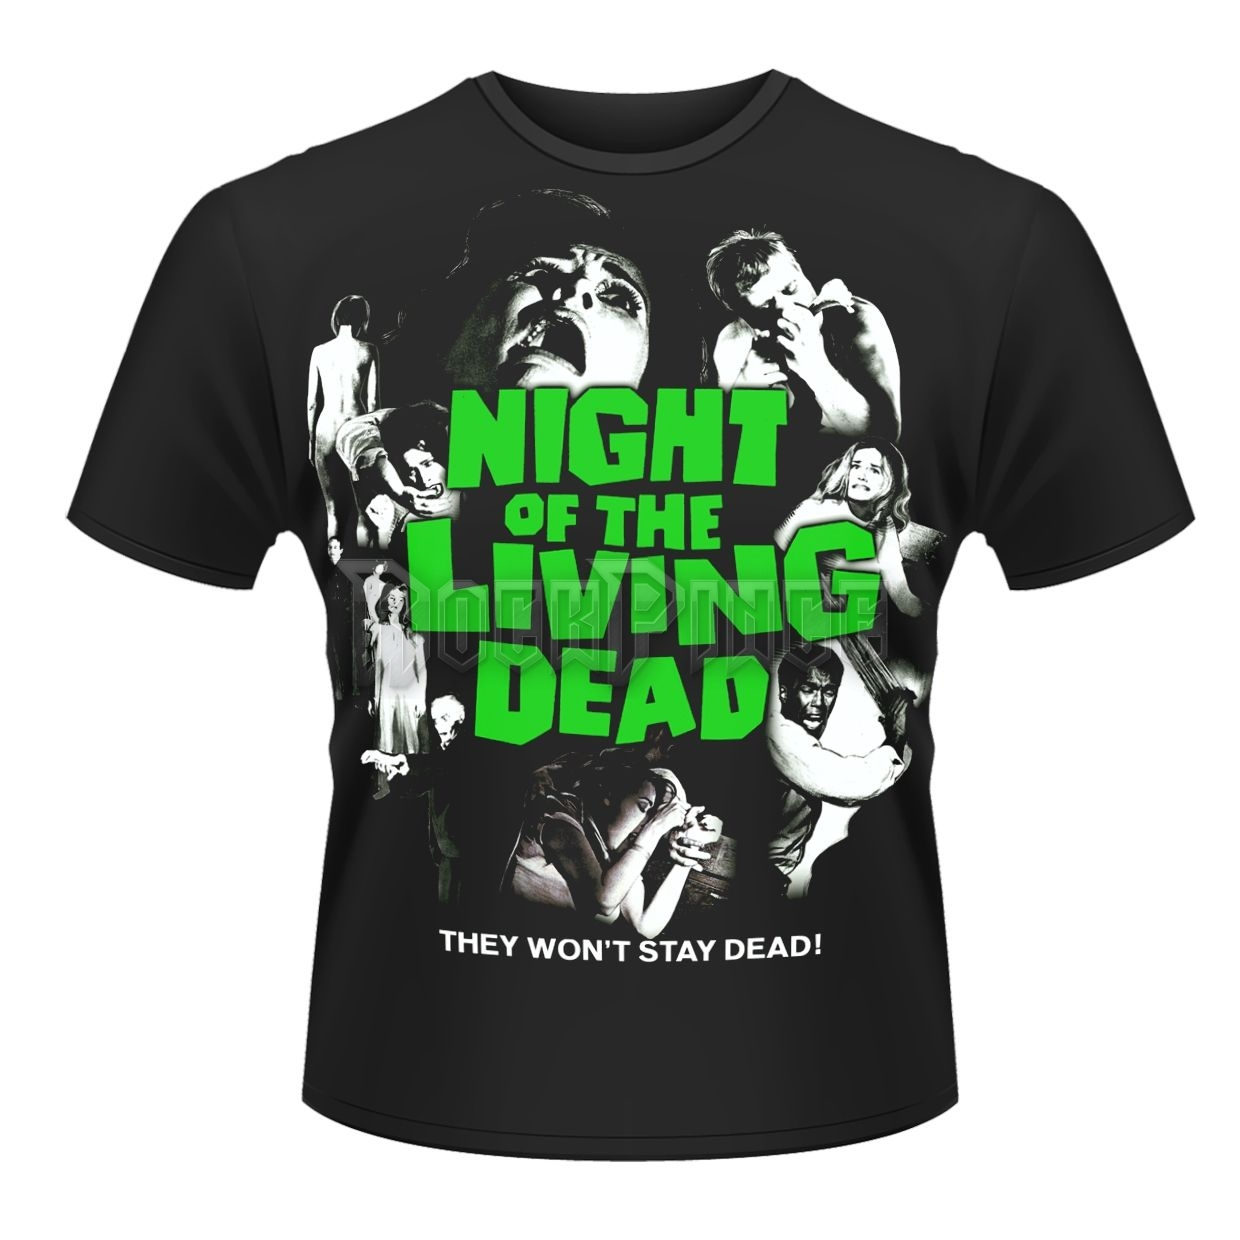 PLAN 9 - NIGHT OF THE LIVING DEAD - NIGHT OF THE LIVING DEAD - PH7282